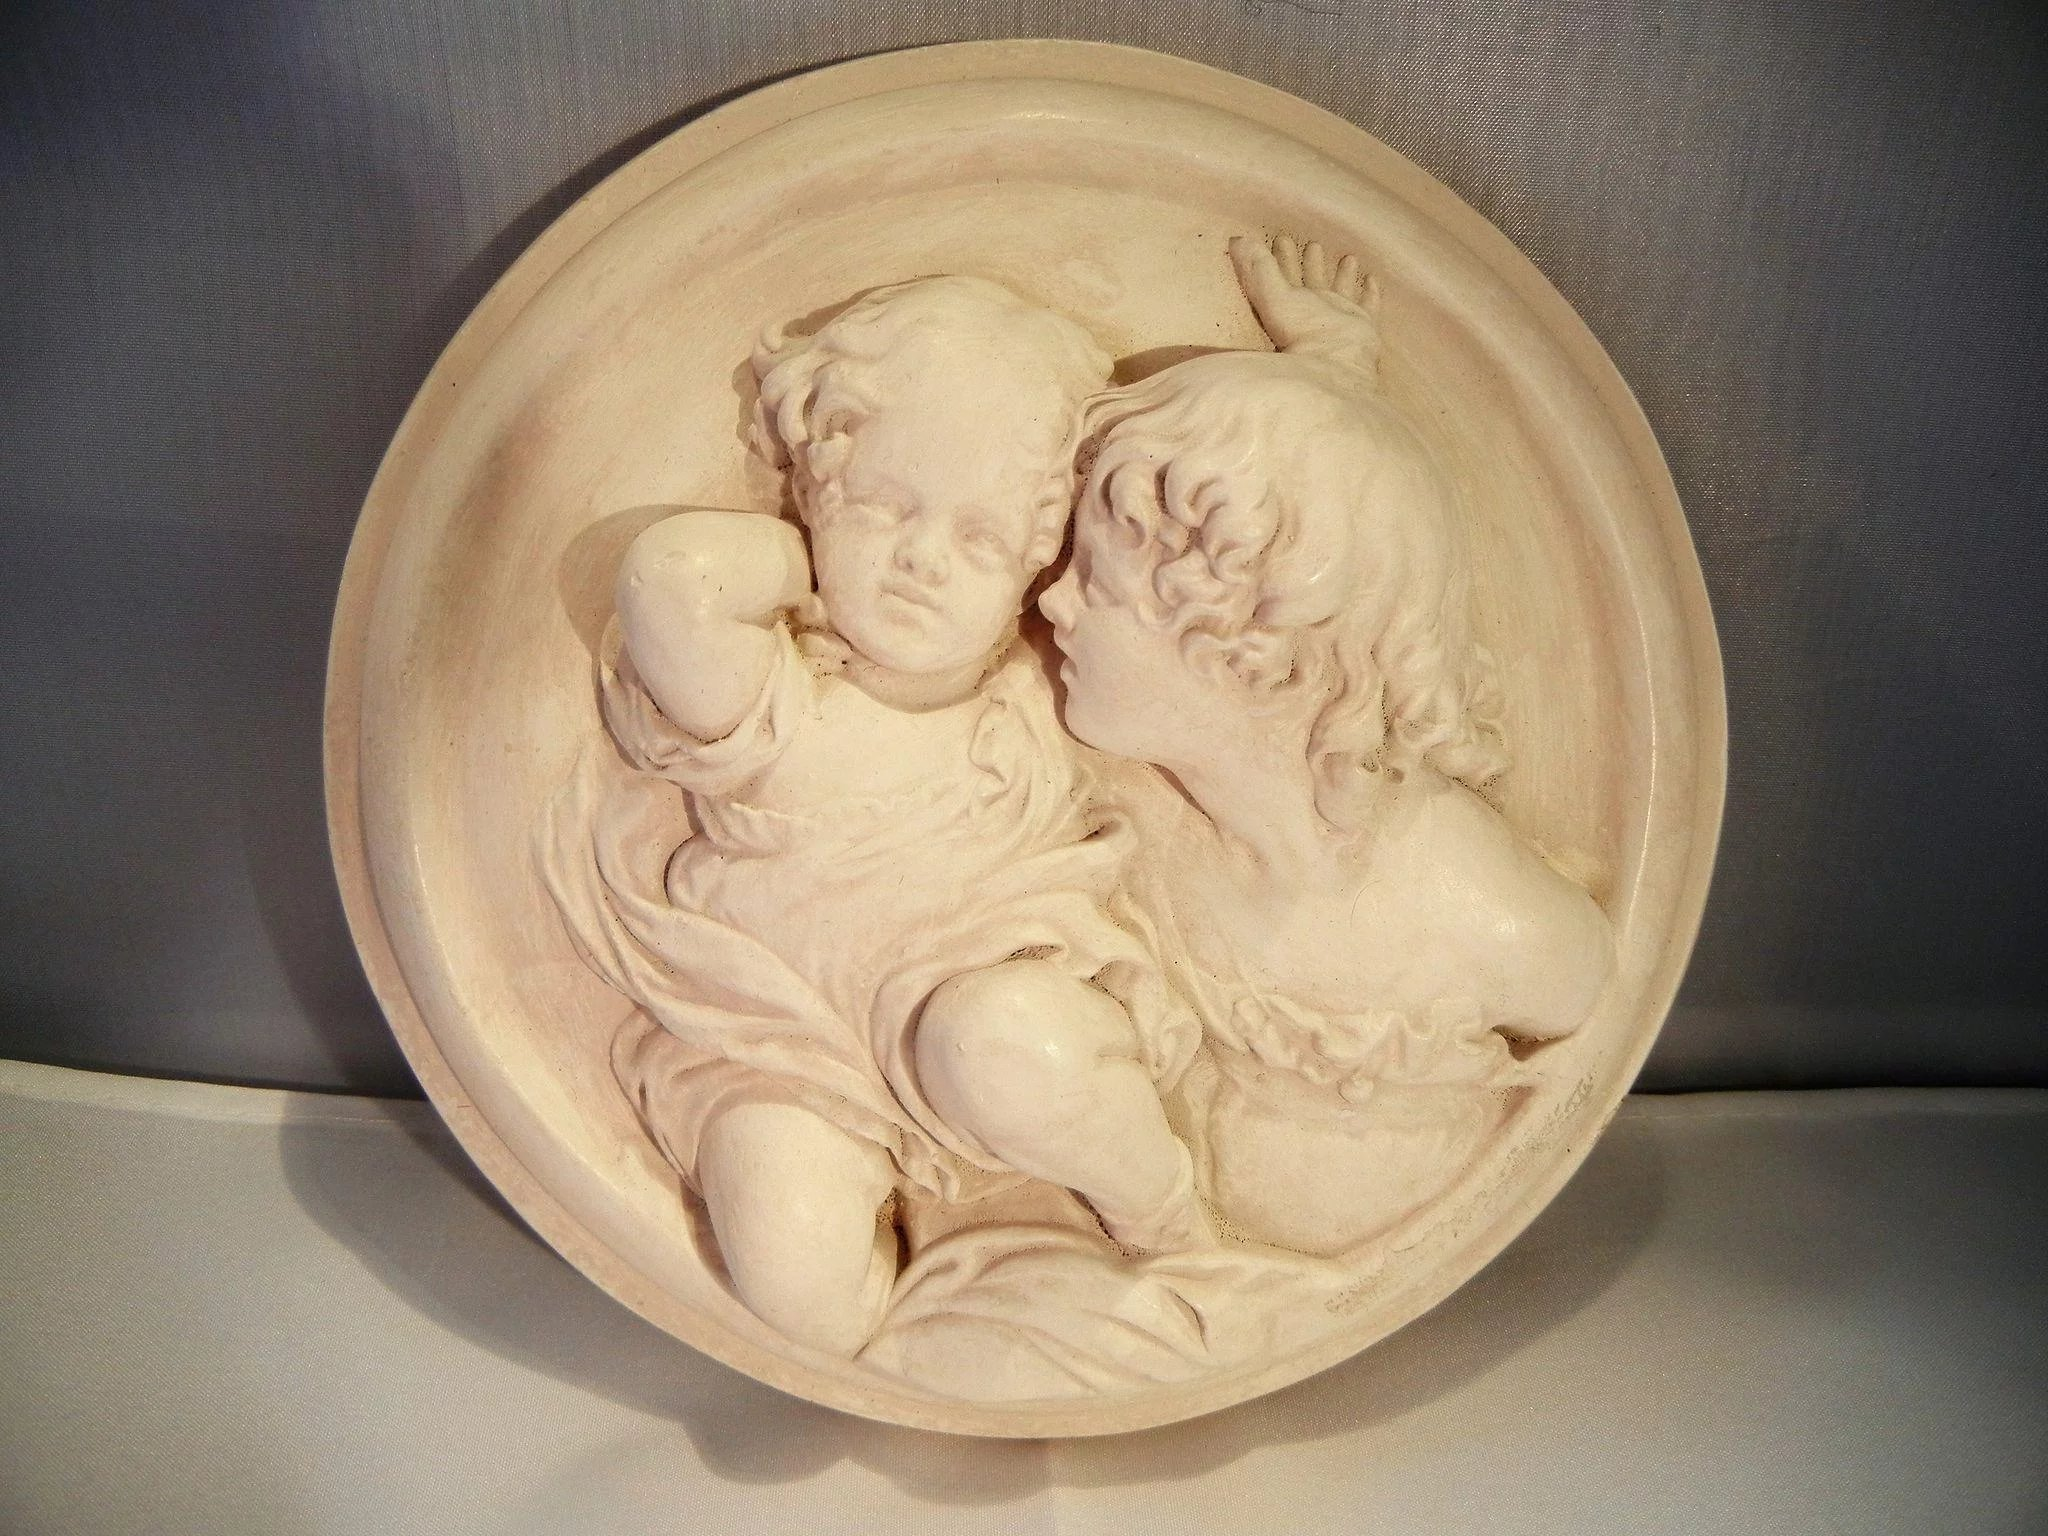 Contemporary Plaster Relief Wall Art Image Collection - Art & Wall ...